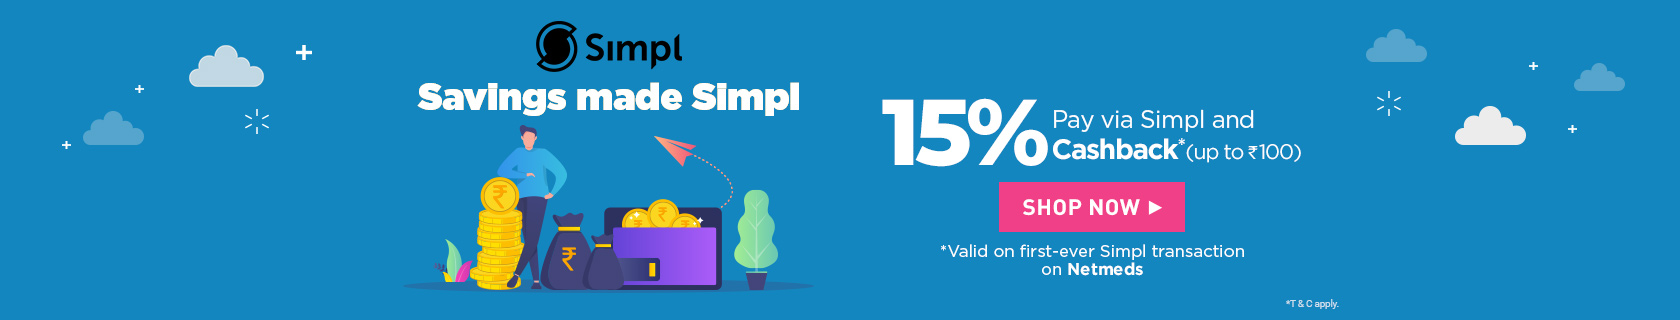 Make payment via Simpl Pay to get 15% cashback